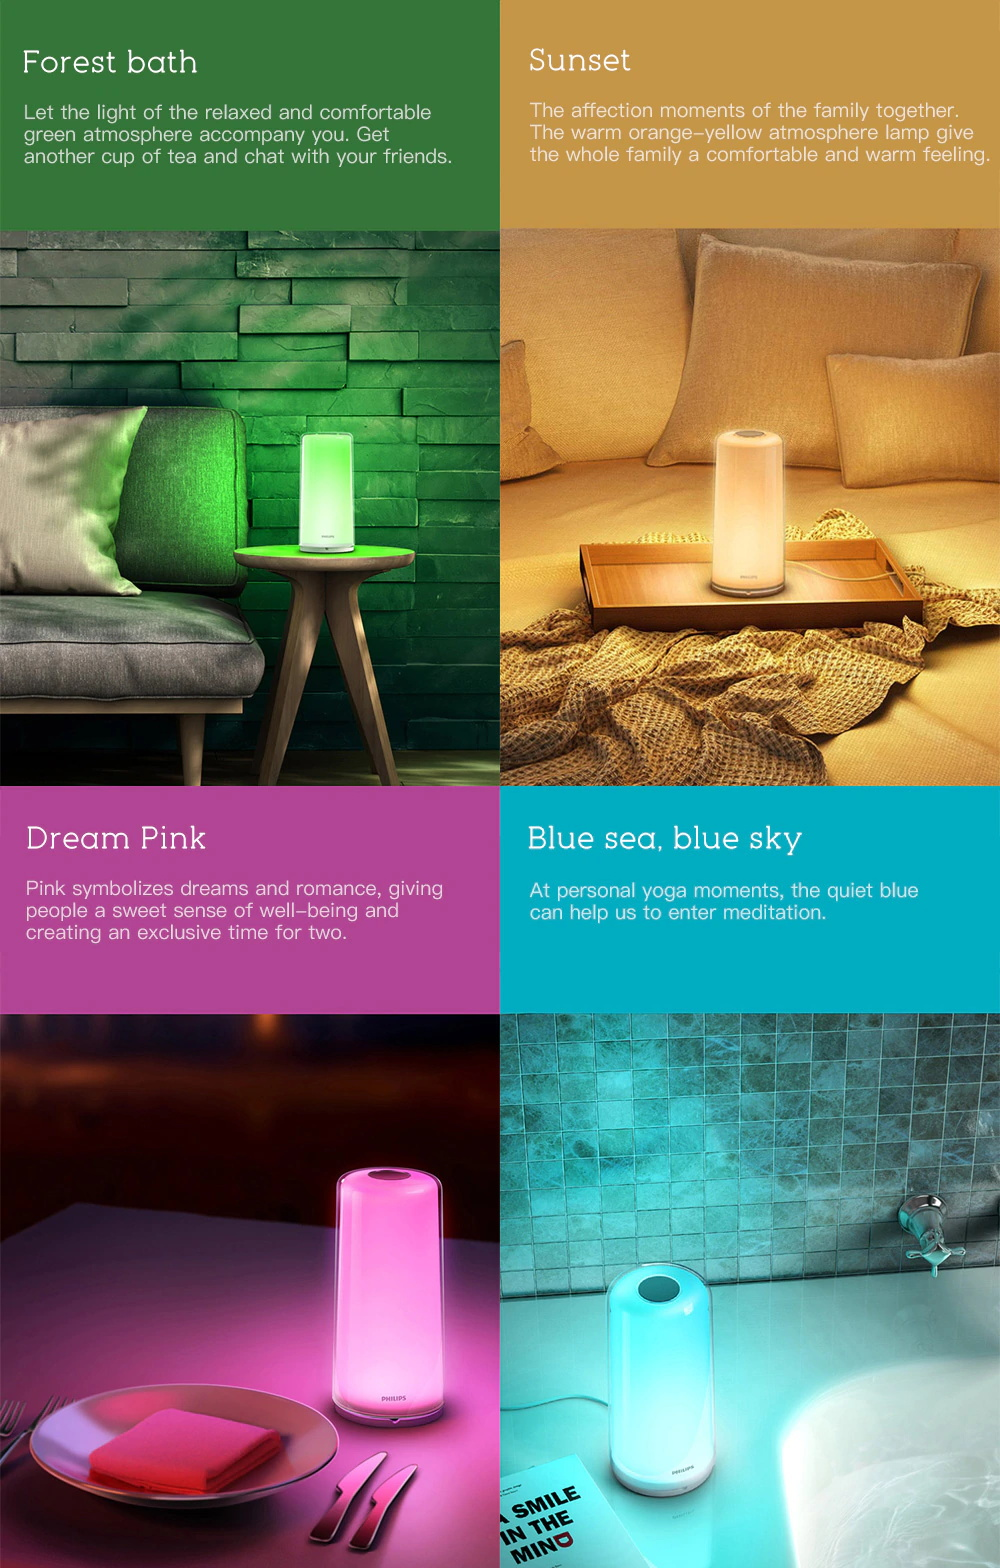 philips smart bed lamp